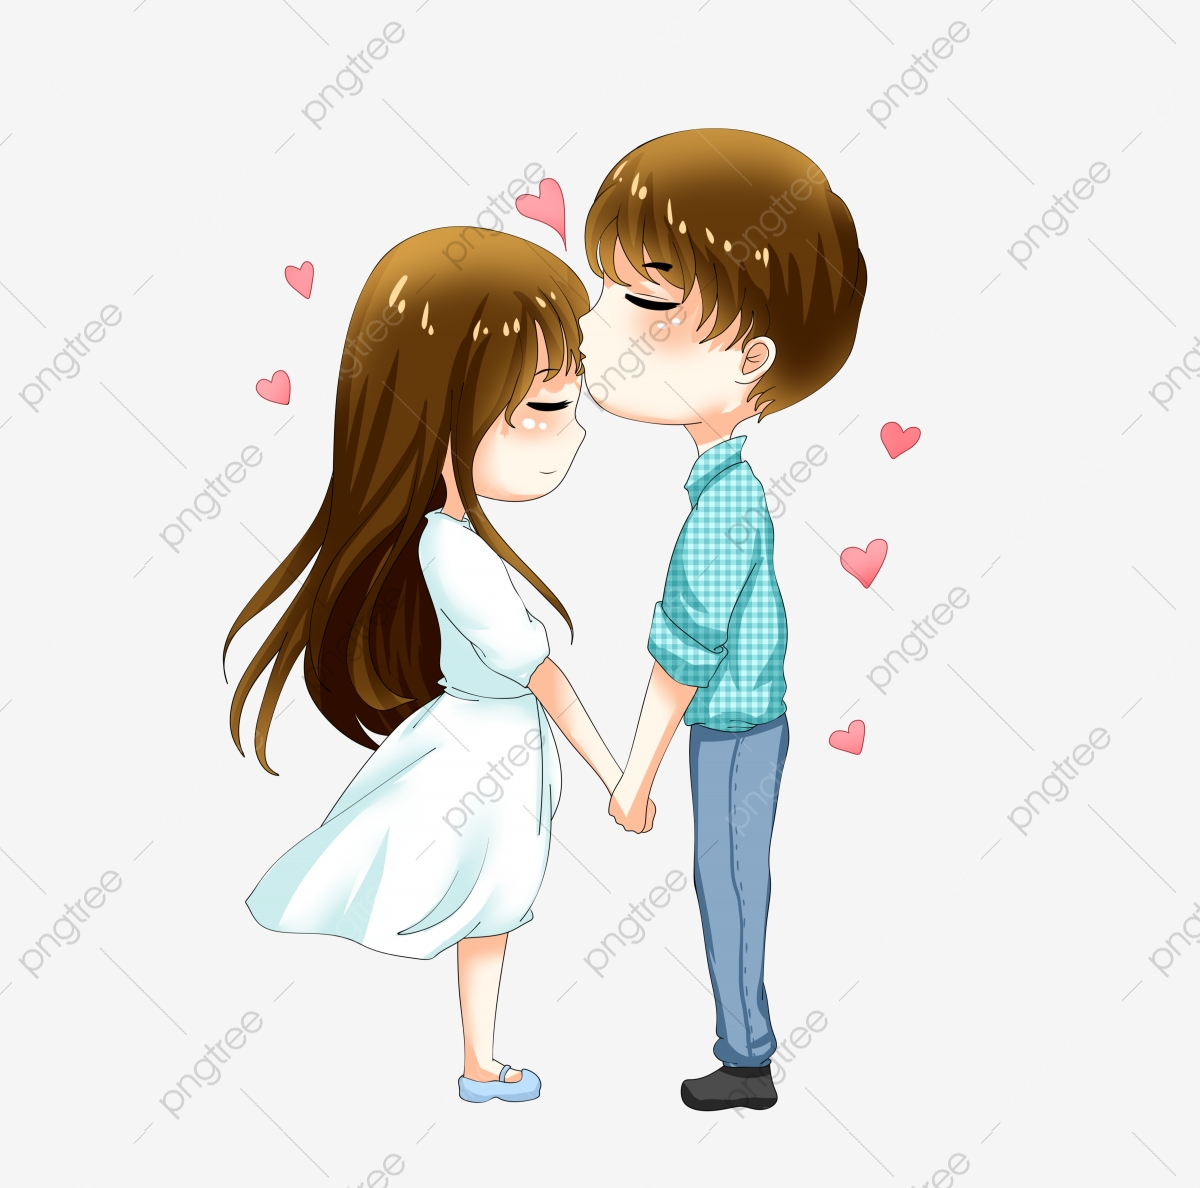 Love Couple Png Vector Psd And Clipart With Transparent Background For Free Download Pngtree